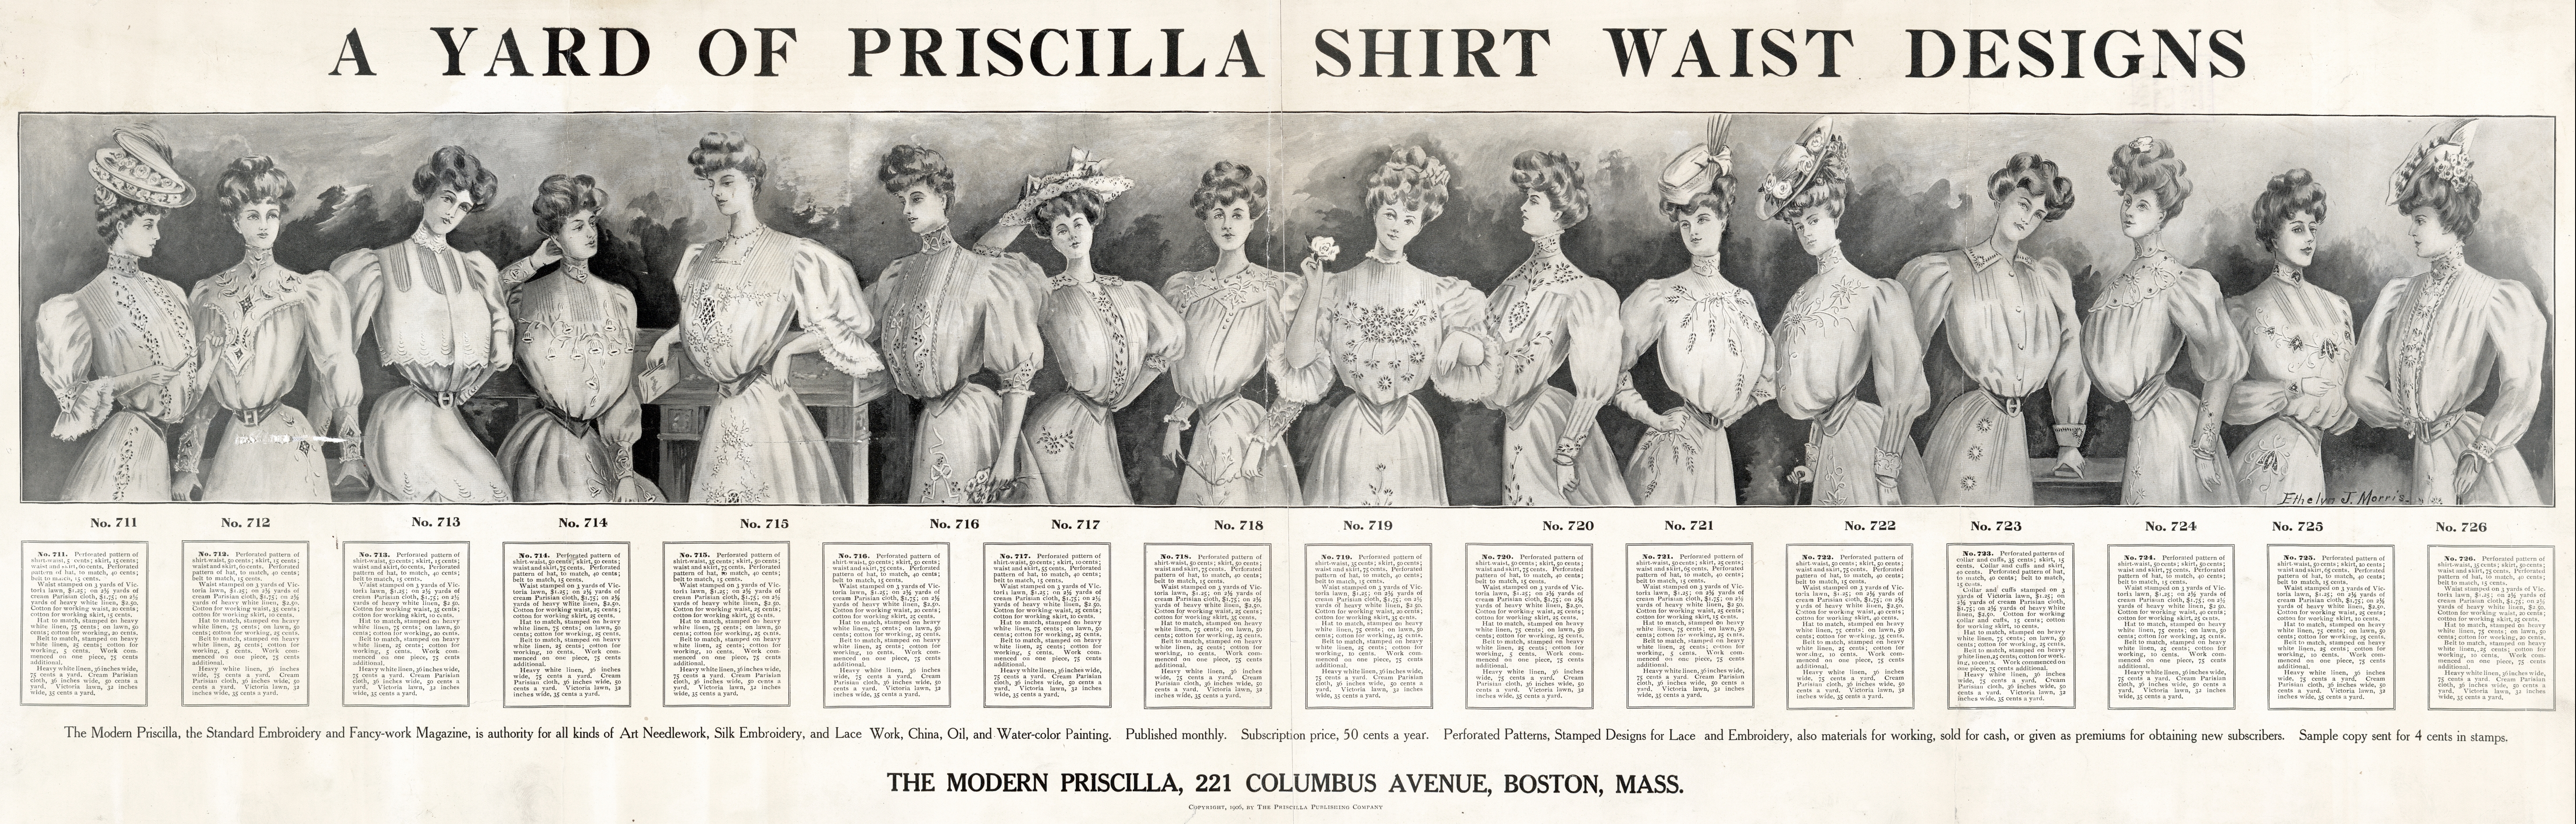 shirtwaist